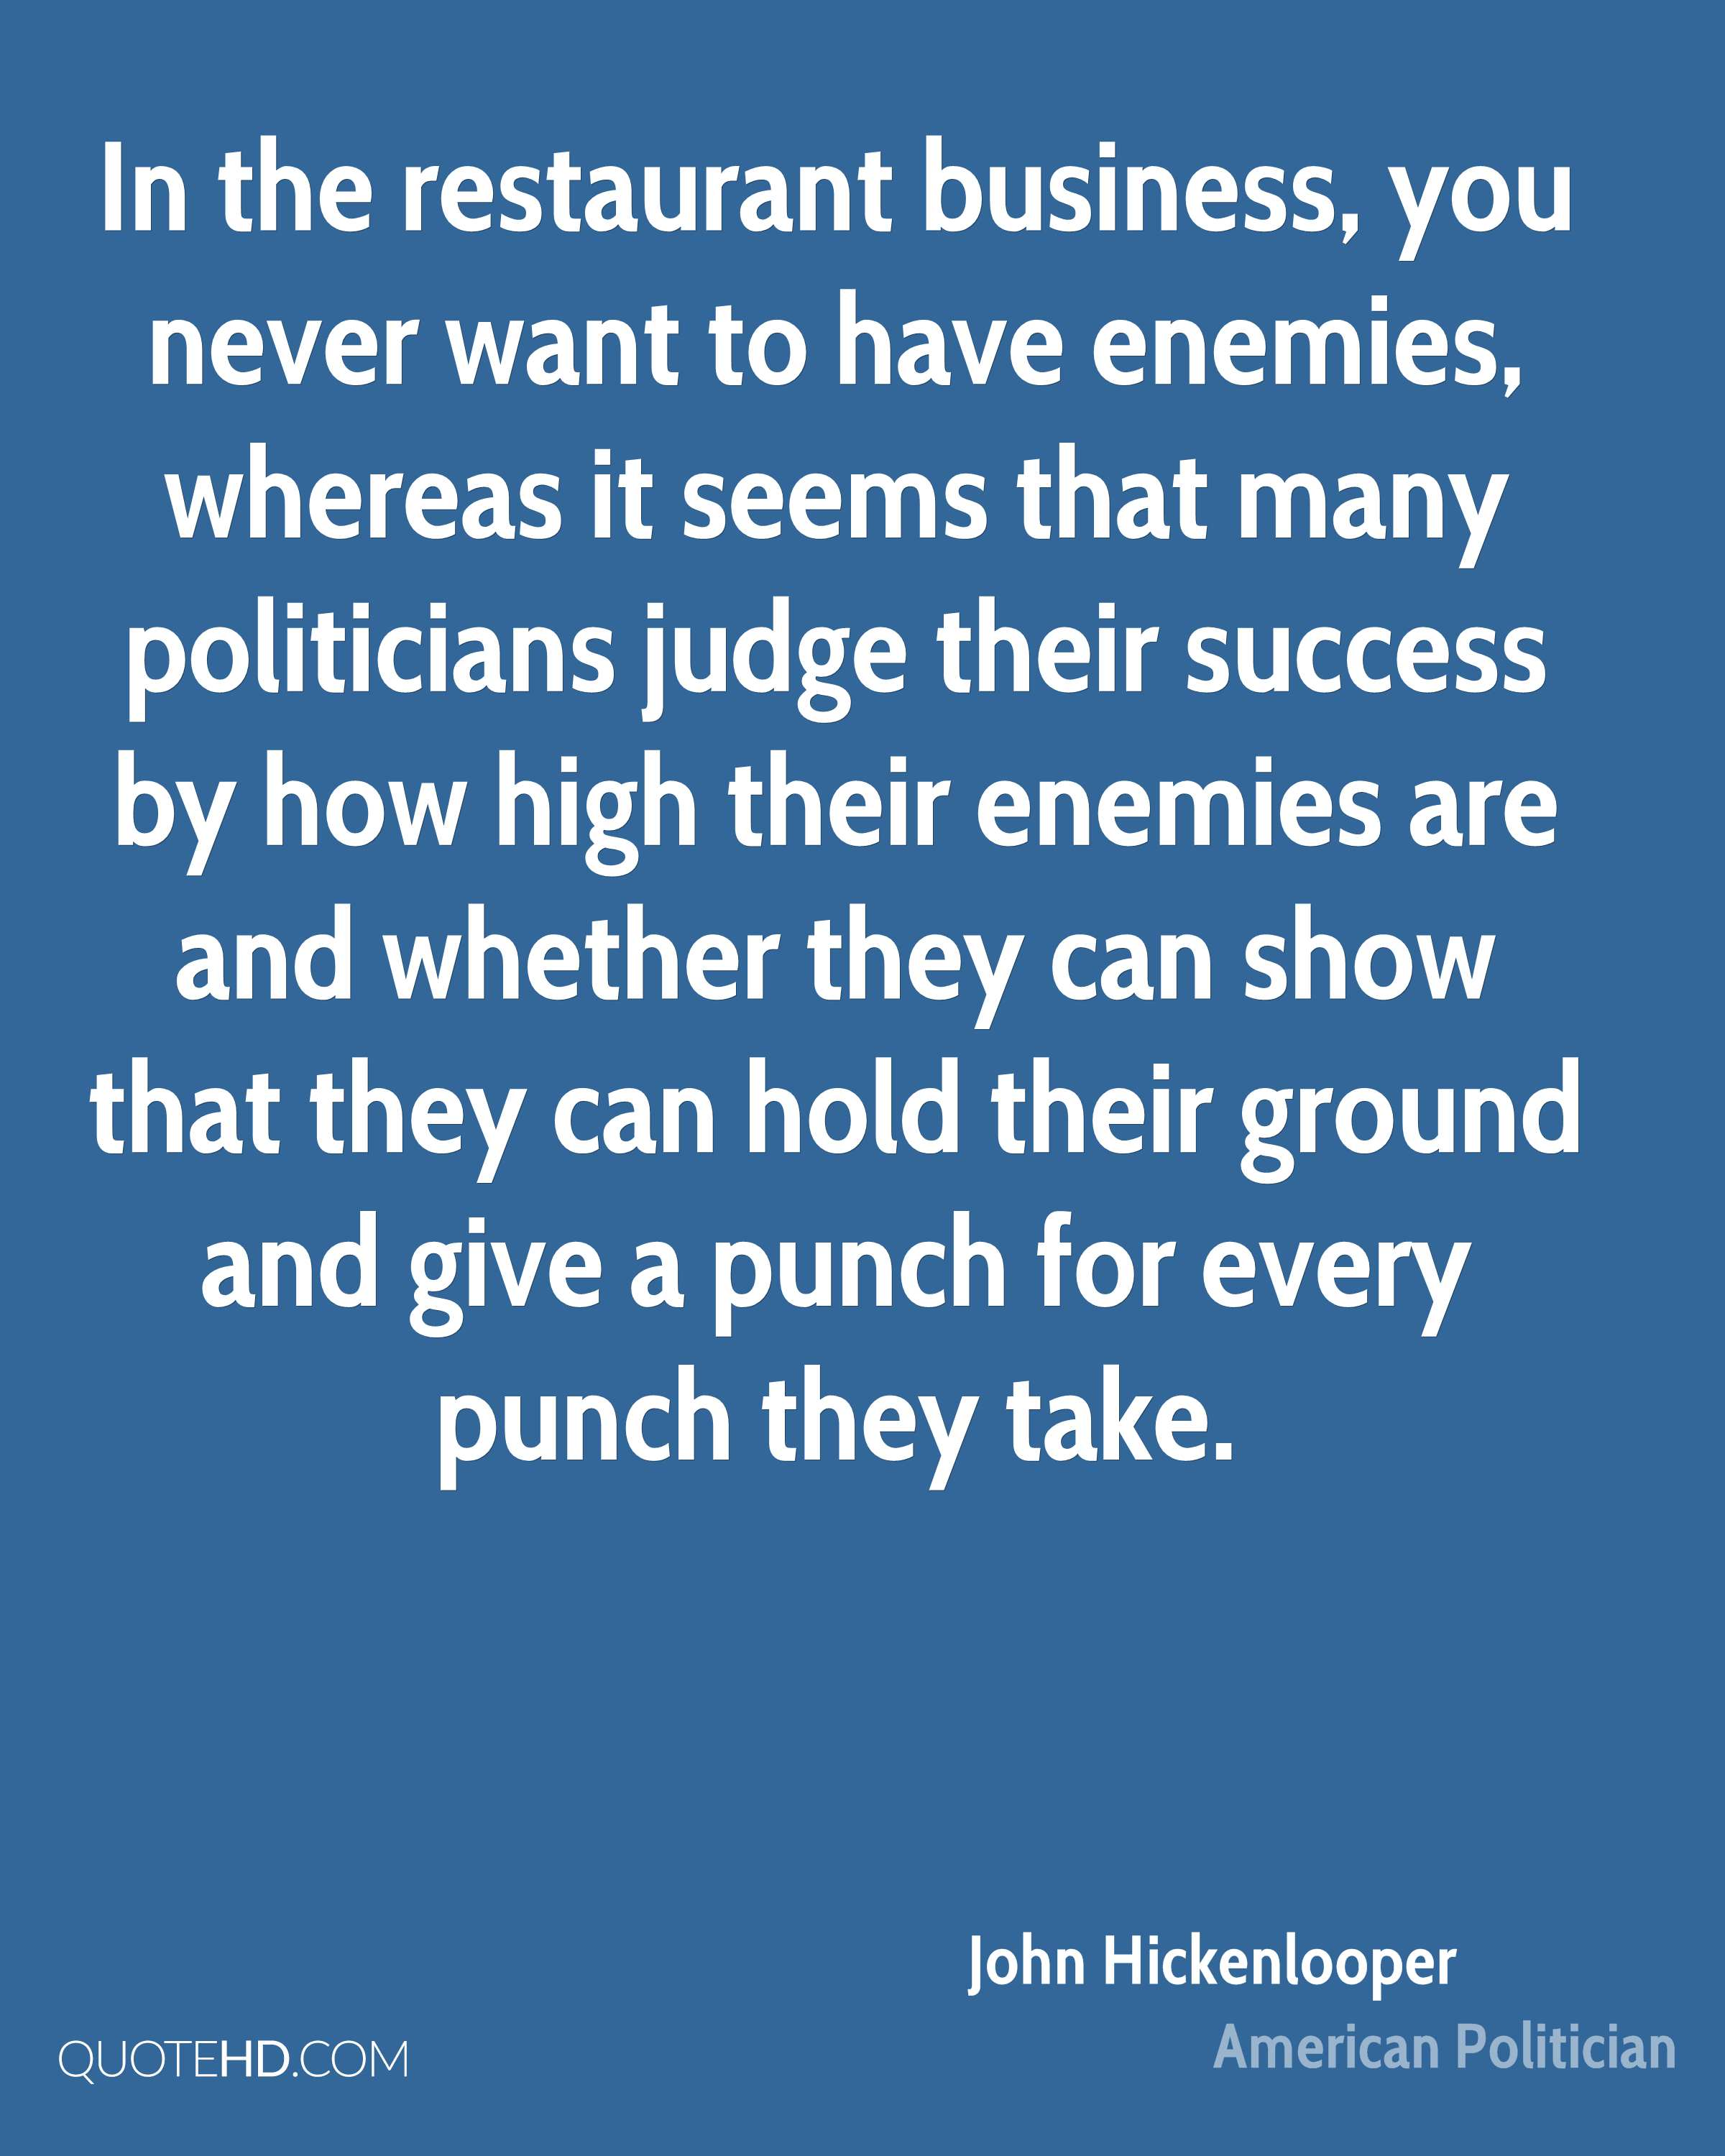 In the restaurant business, you never want to have enemies, whereas it seems that many politicians judge their success by how high their enemies are and whether they can show that they can hold their ground and give a punch for every punch they take.